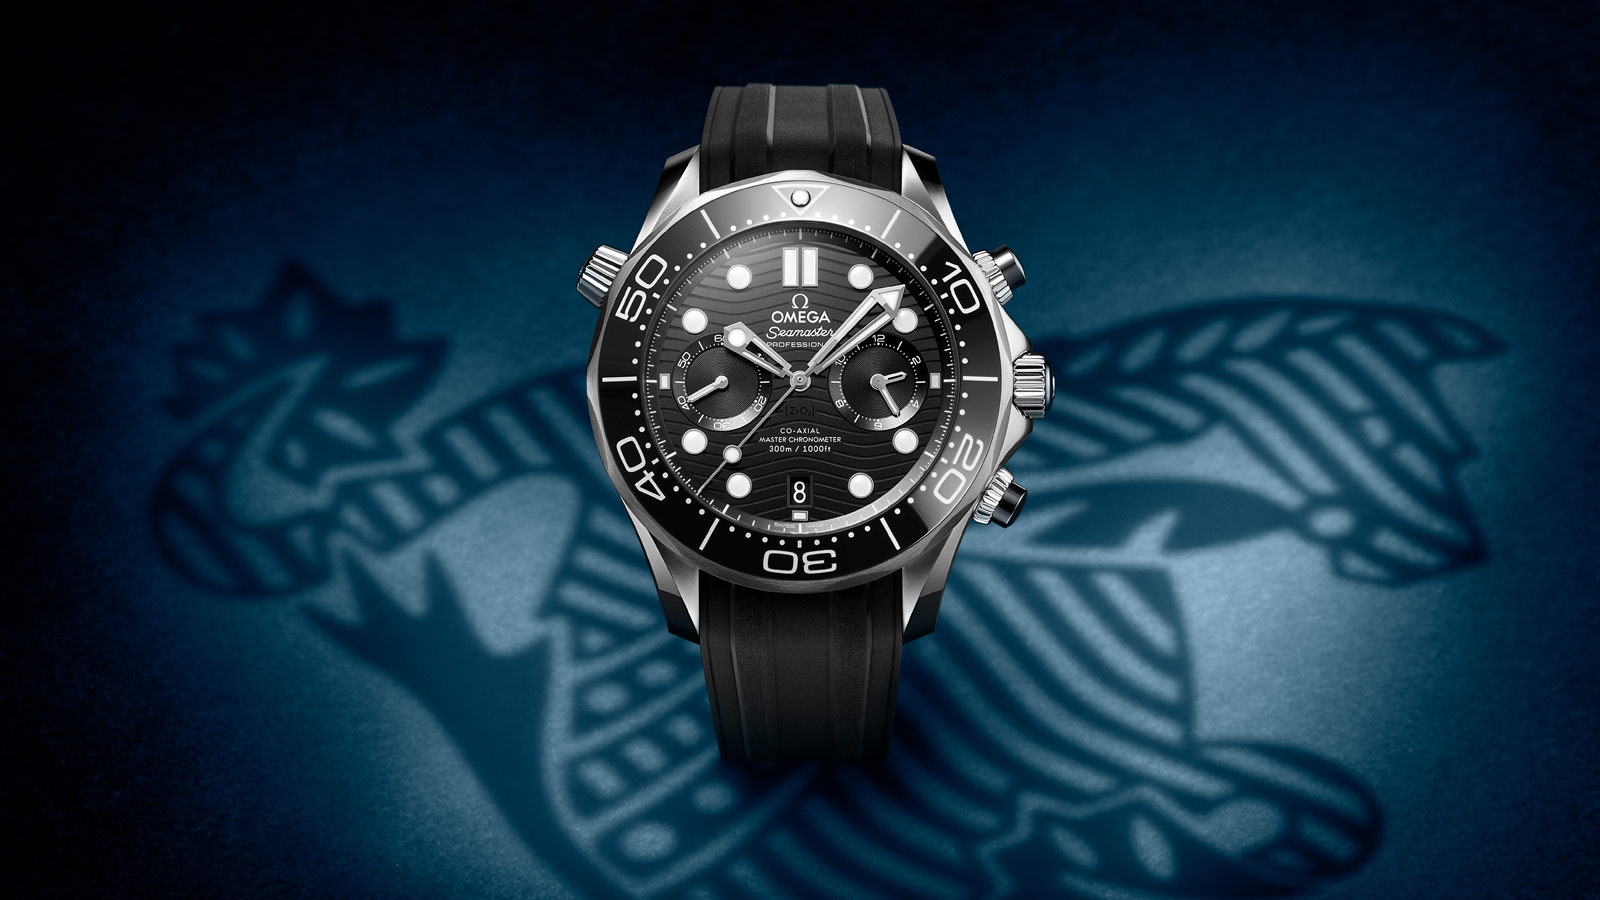 Seamaster Diver 300 M Diver 300M Omega Co‑Axial Master Chronometer Chronograph 44 mm Watch - 210.32.44.51.01.001